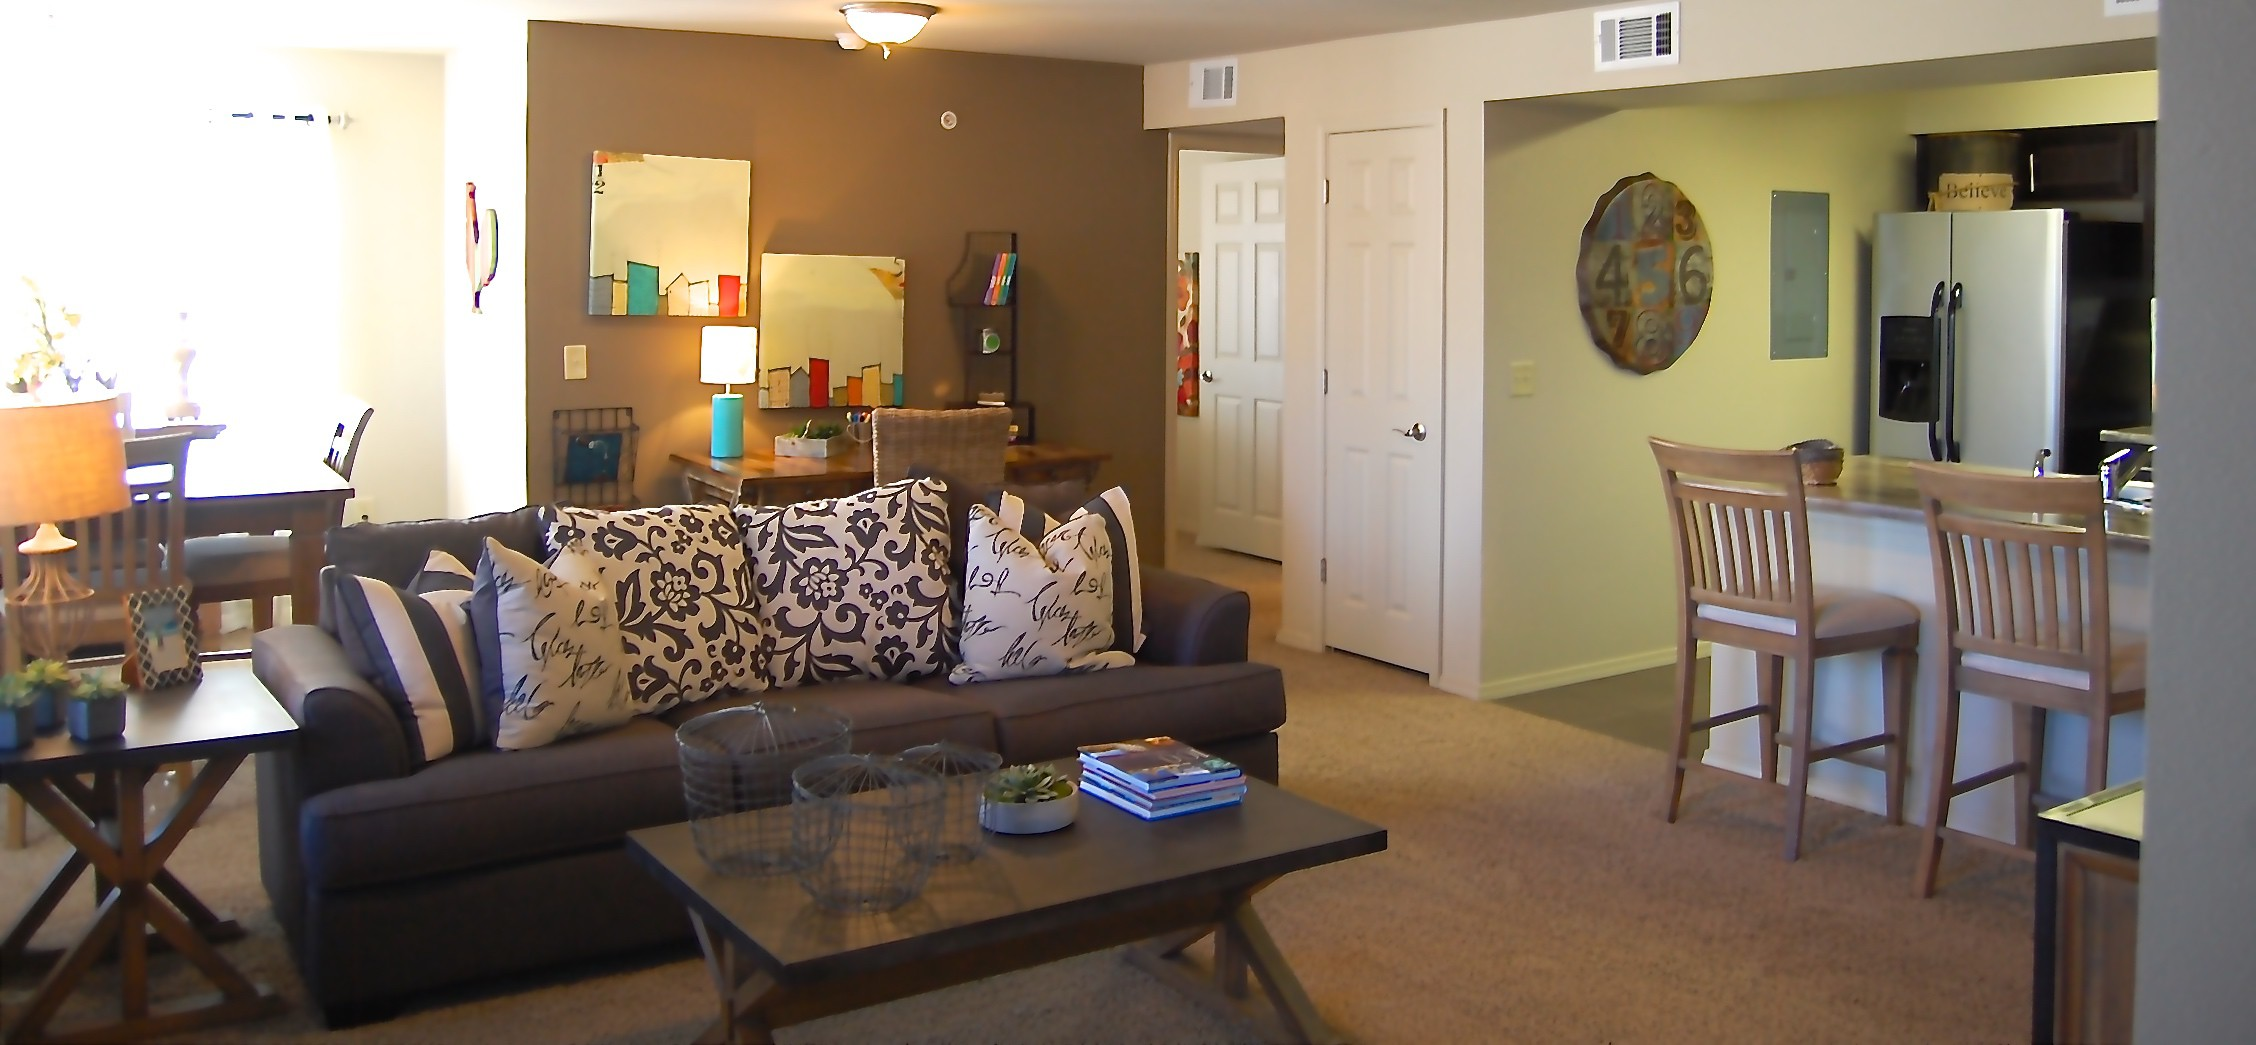 Apartments Near WTAMU Park at Coulter for West Texas A&M University Students in Canyon, TX